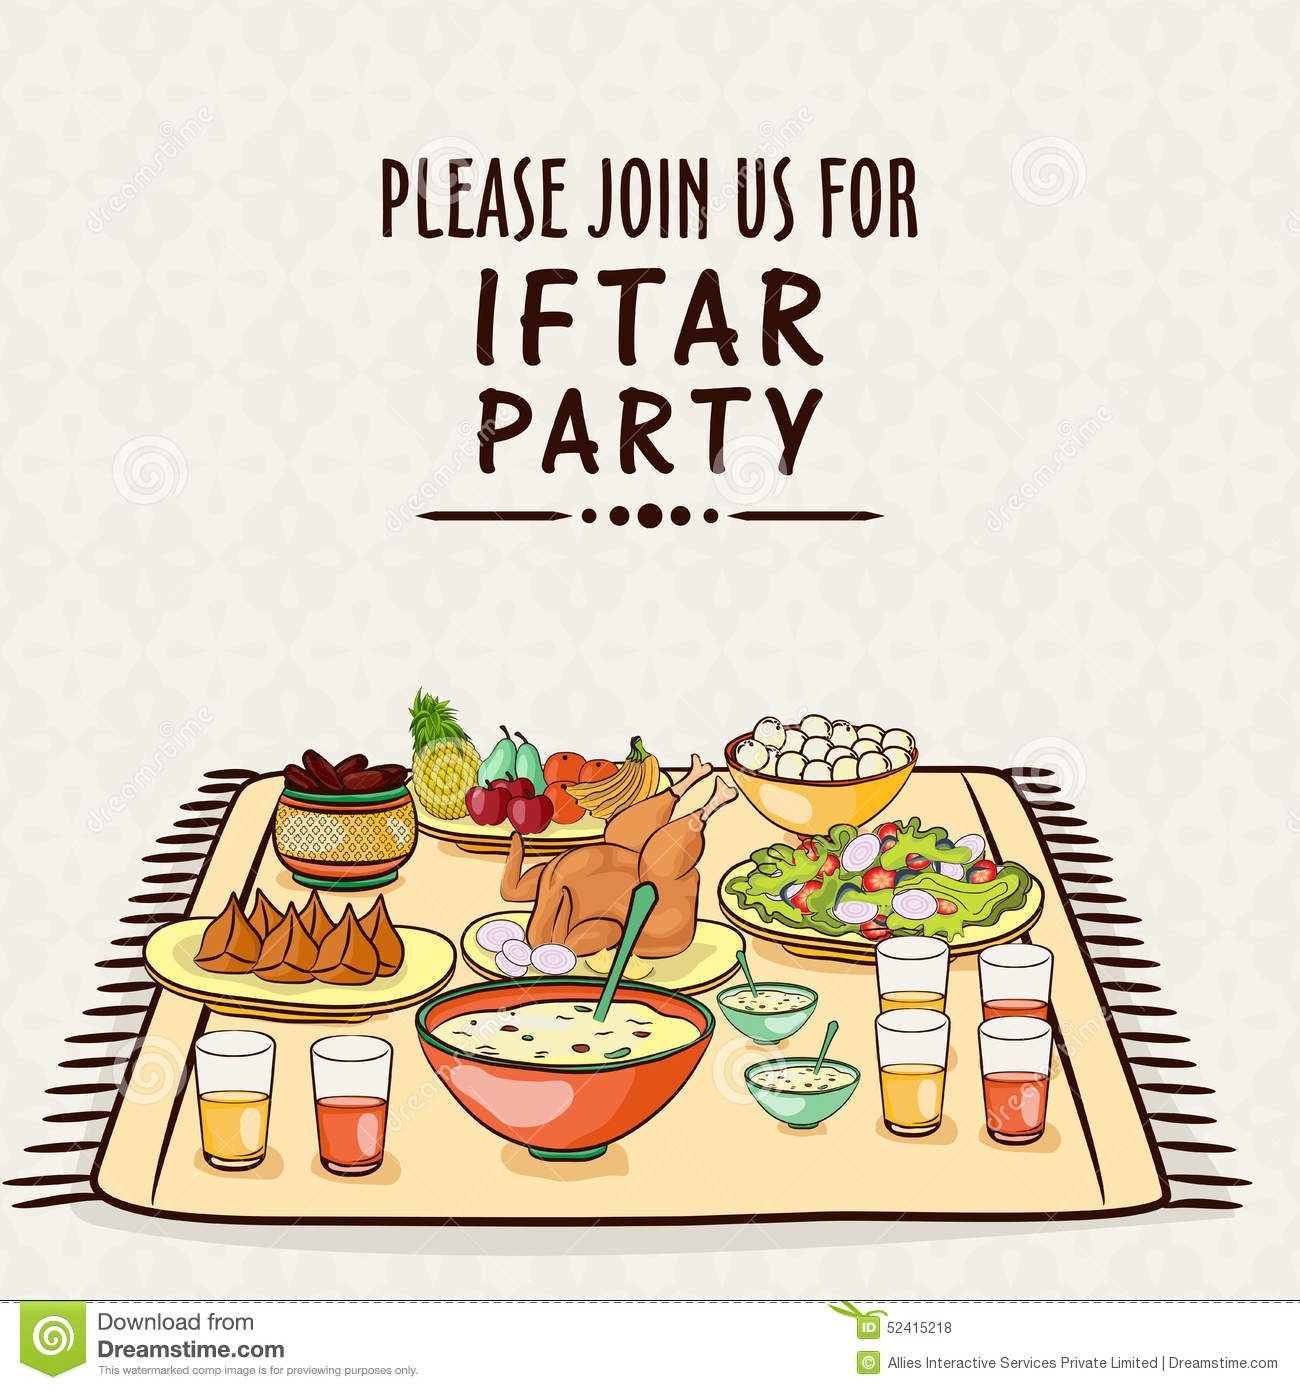 Invitation card for ramadan kareem iftar party celebration invitation card for ramadan kareem iftar party celebration download from over 44 million high stopboris Gallery